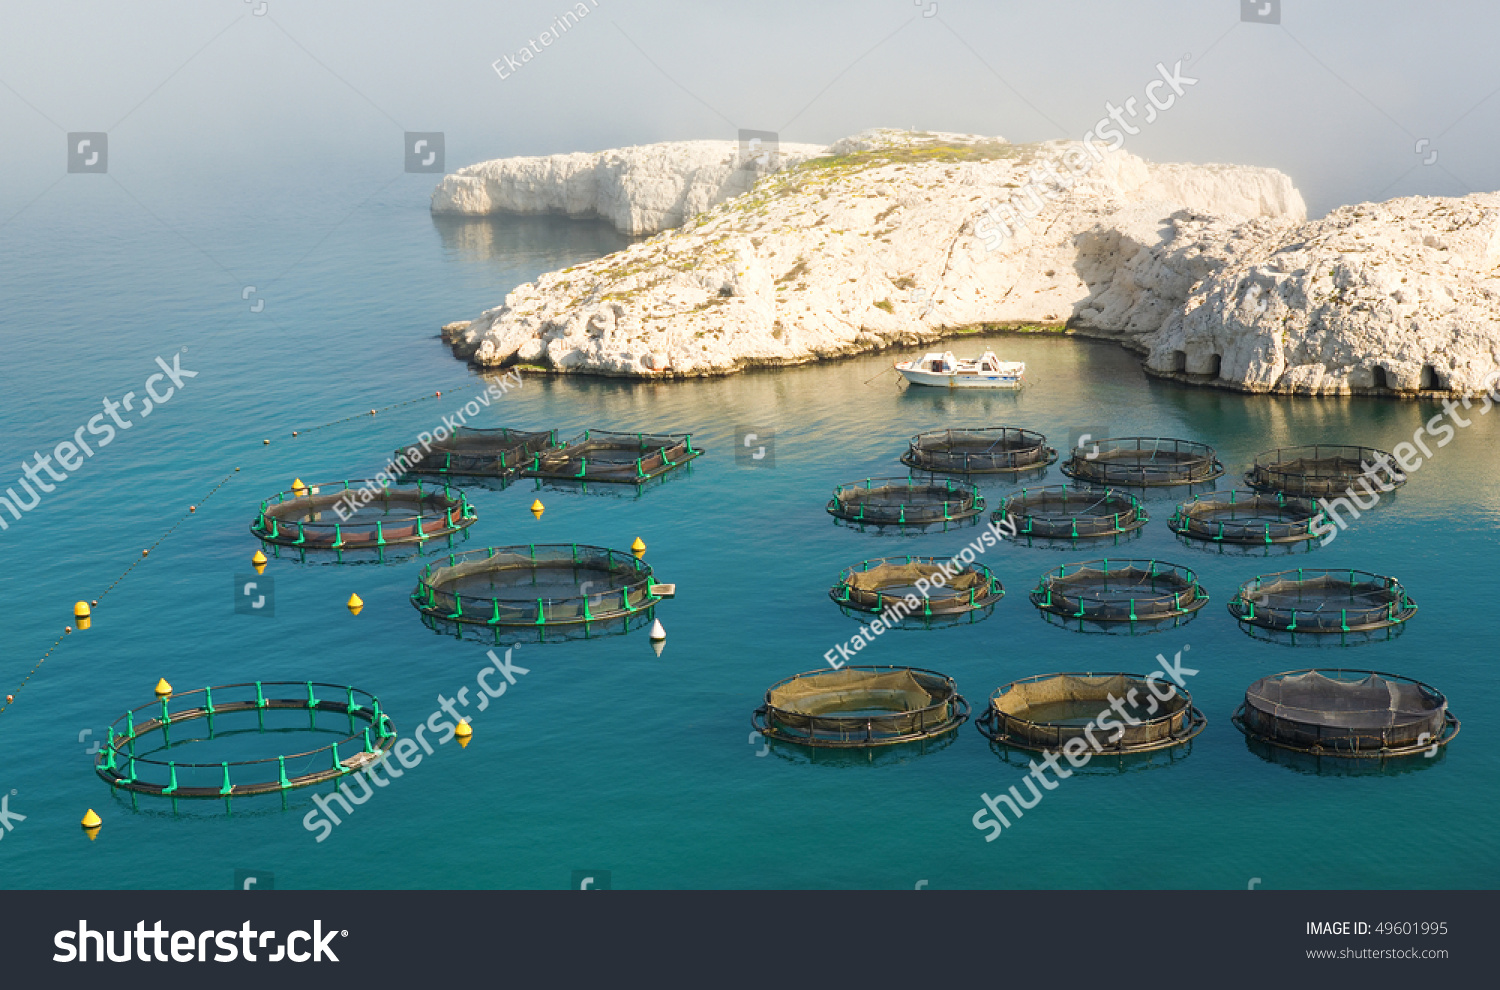 Fish farm on frioul island near stock photo 49601995 for Fish farms near me